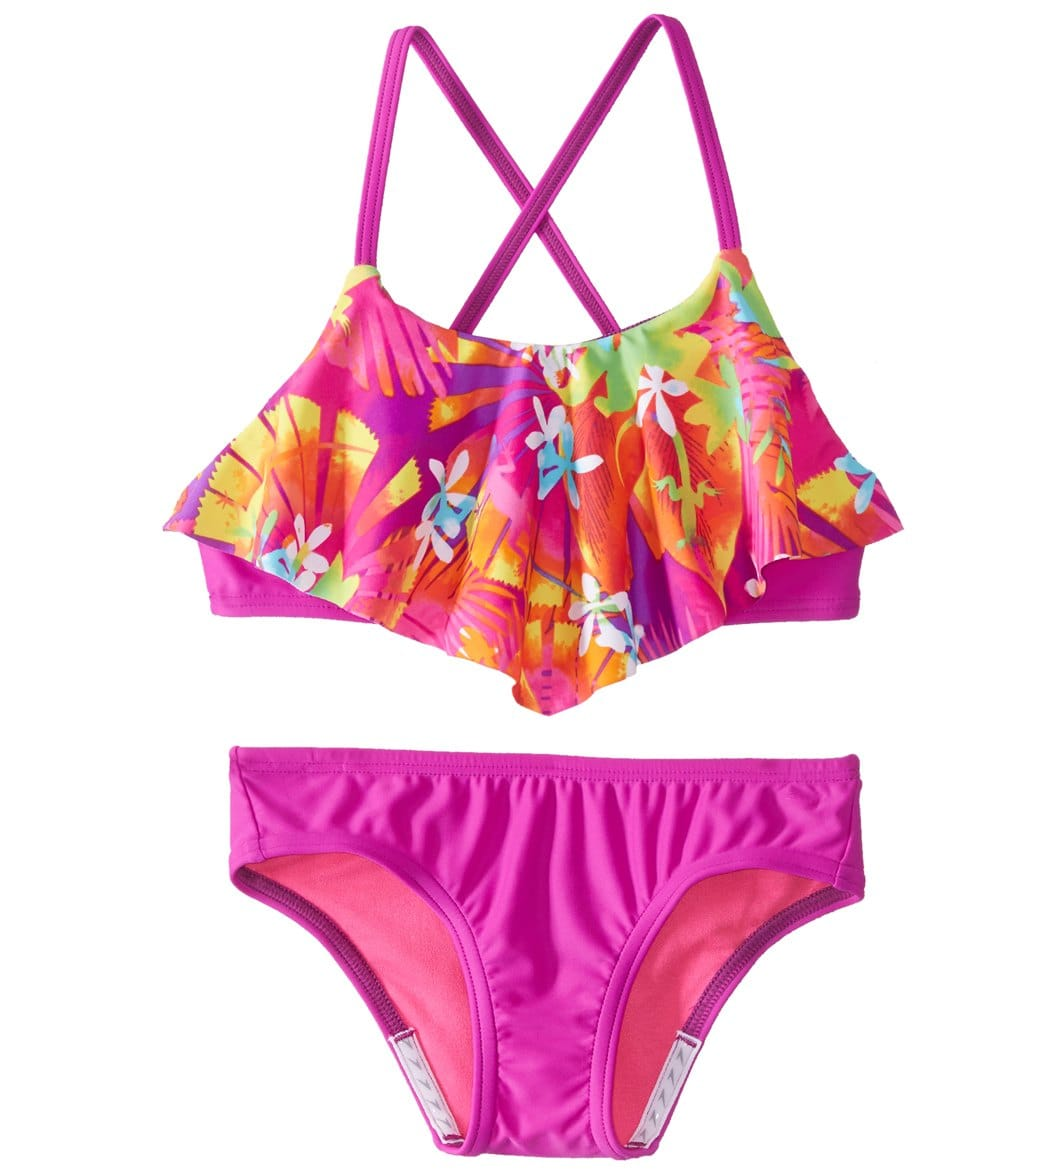 8a181f71bc Speedo Girls' Jungle Floral Ruffle Two Piece Bikini Set (7-16) at  SwimOutlet.com